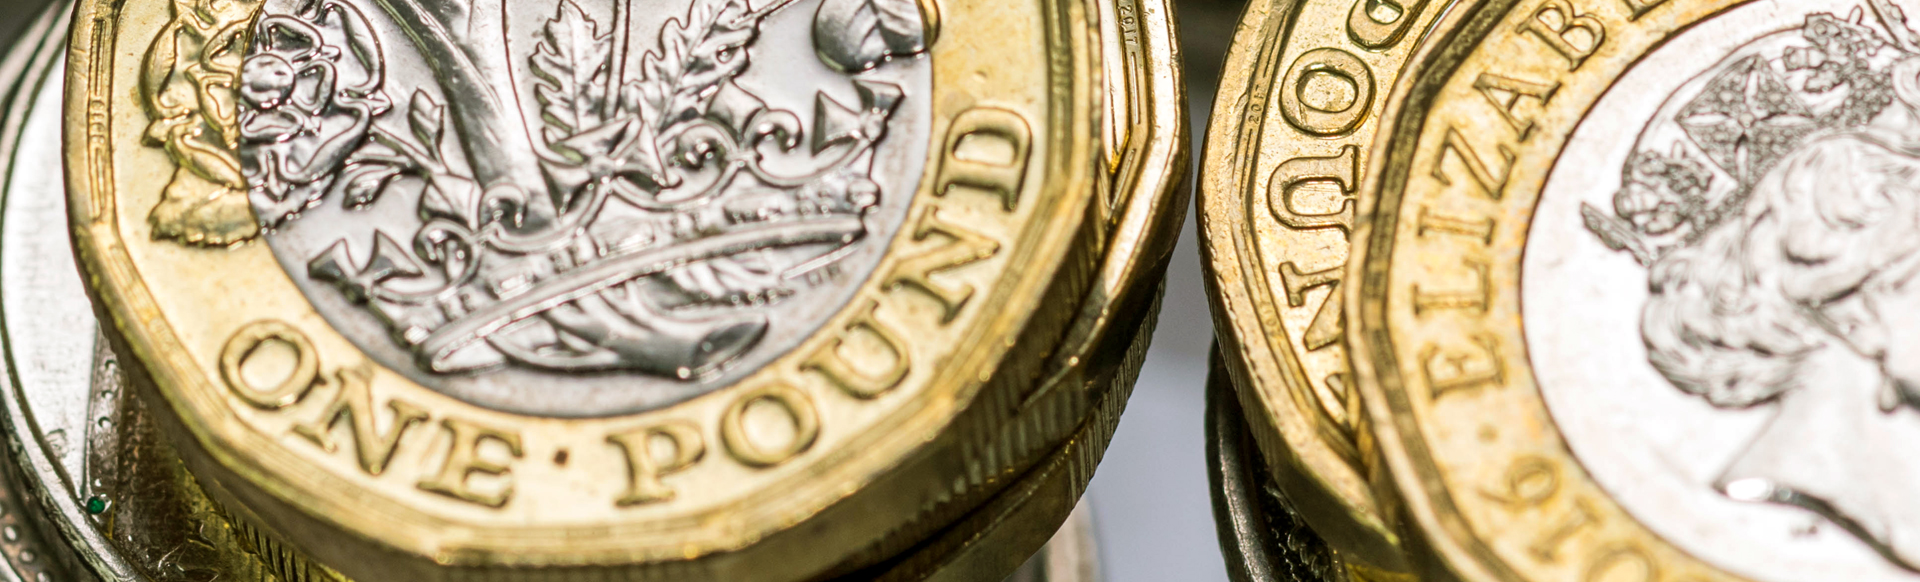 One pound coins stacked on each other.